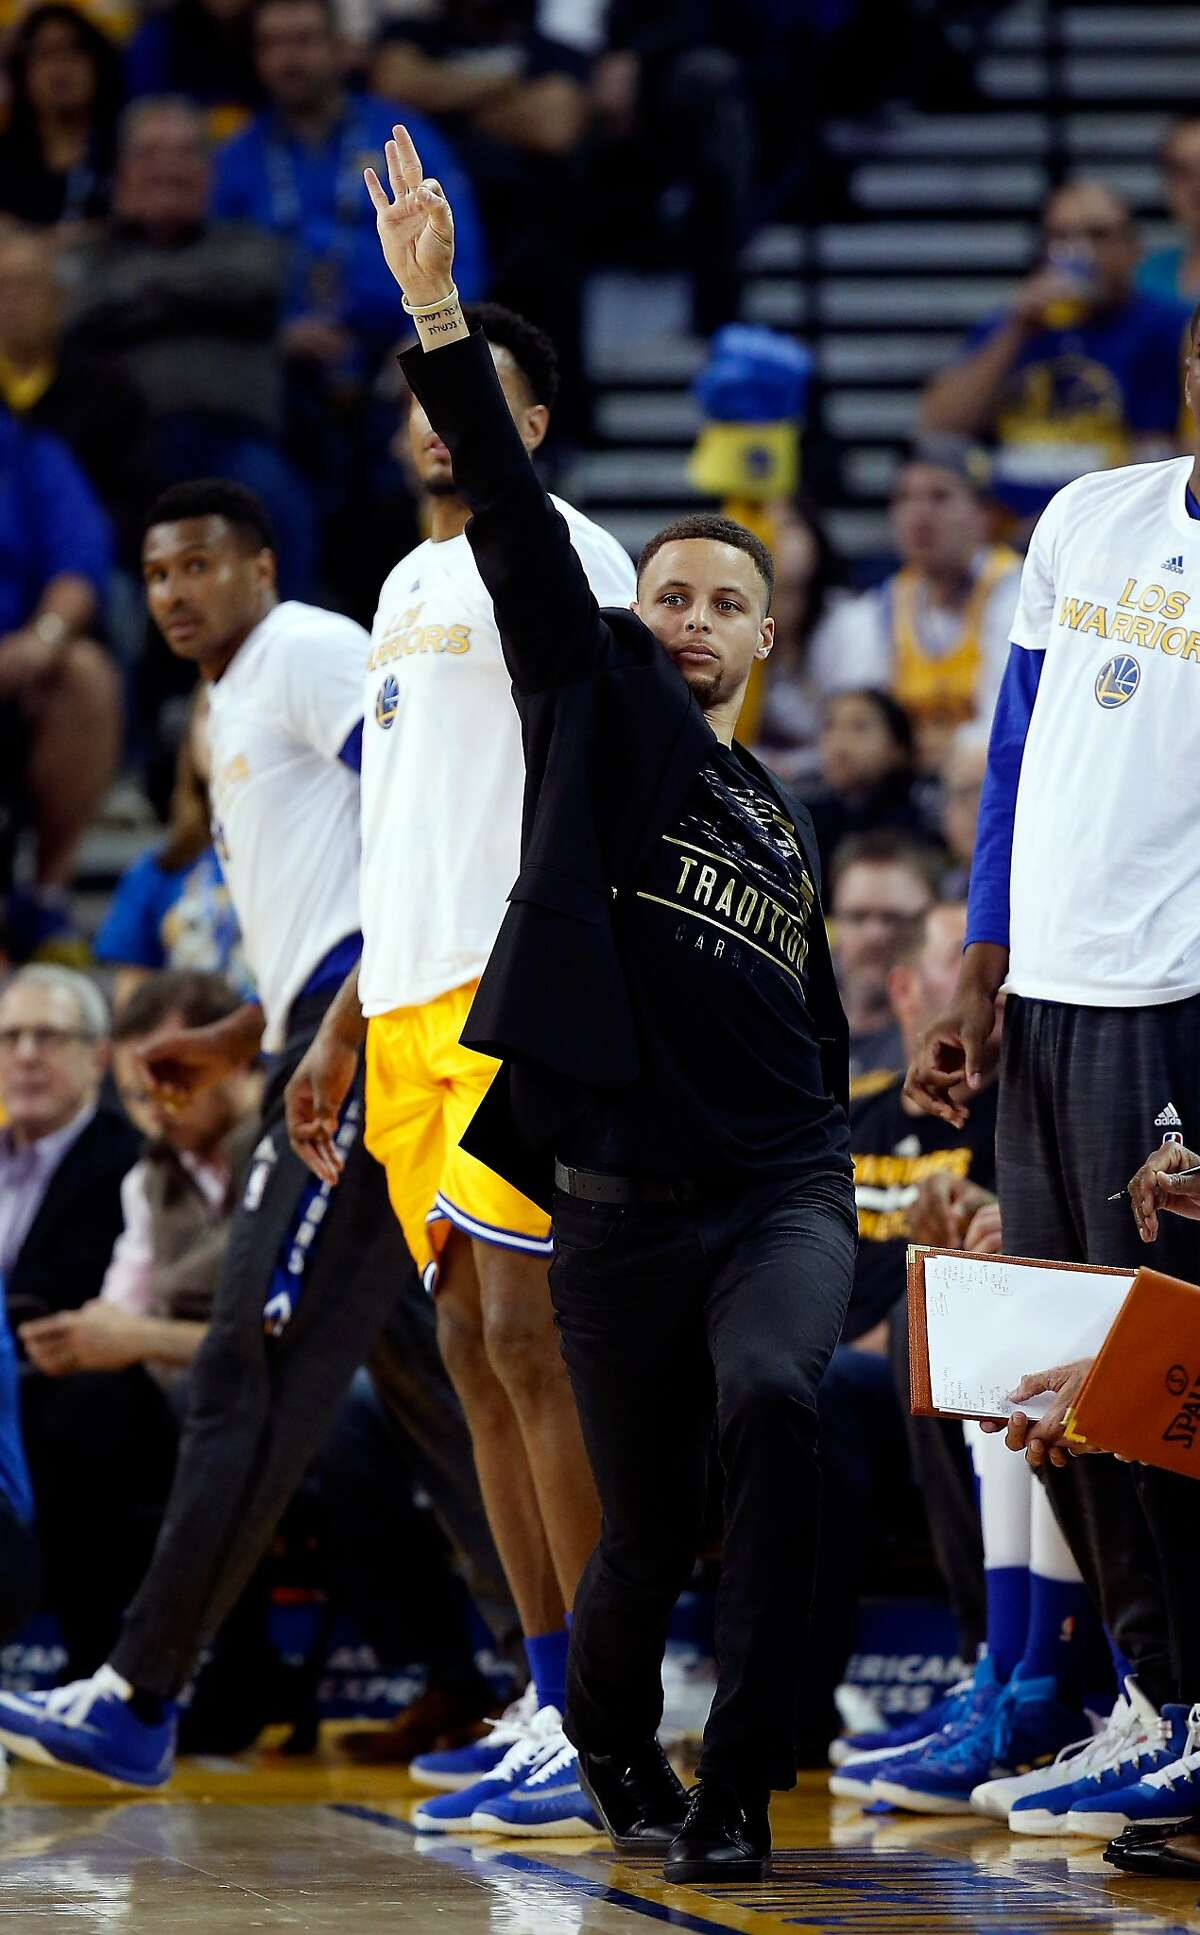 Stephen Curry, who missed the game with a sore left ankle, reacts from the sideline to a teammate's three-pointer against Atlanta on Tuesday in Oakland.